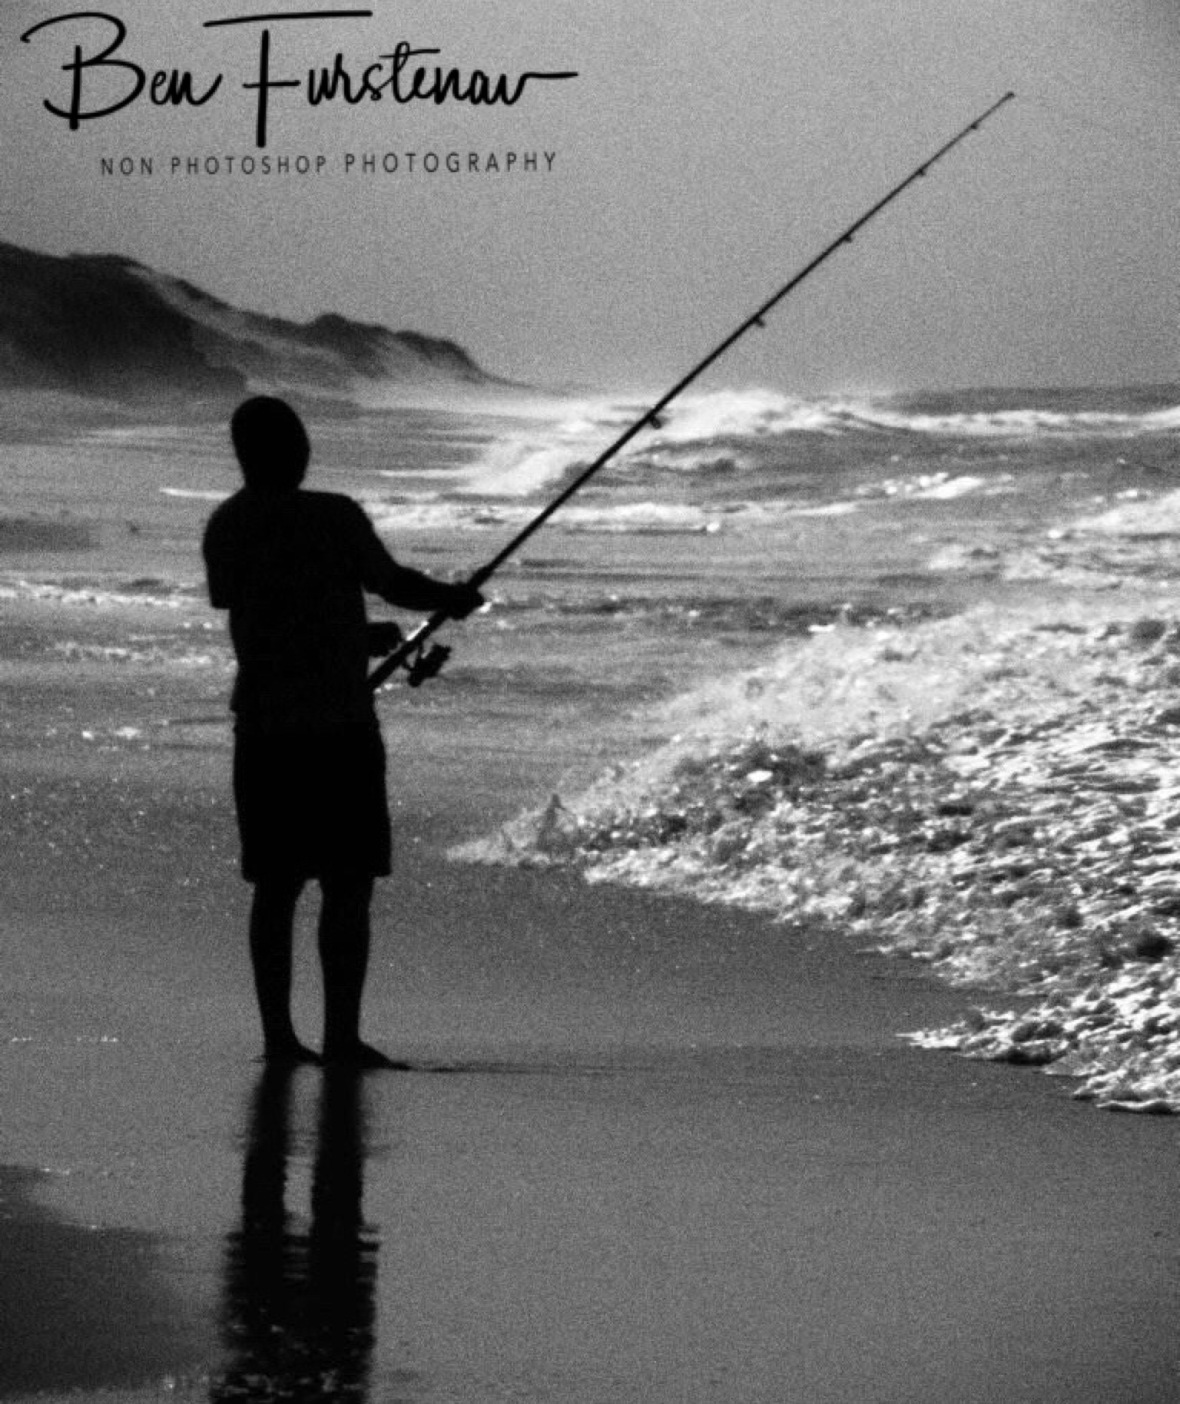 Surf fishing, Machangulo Peninsula